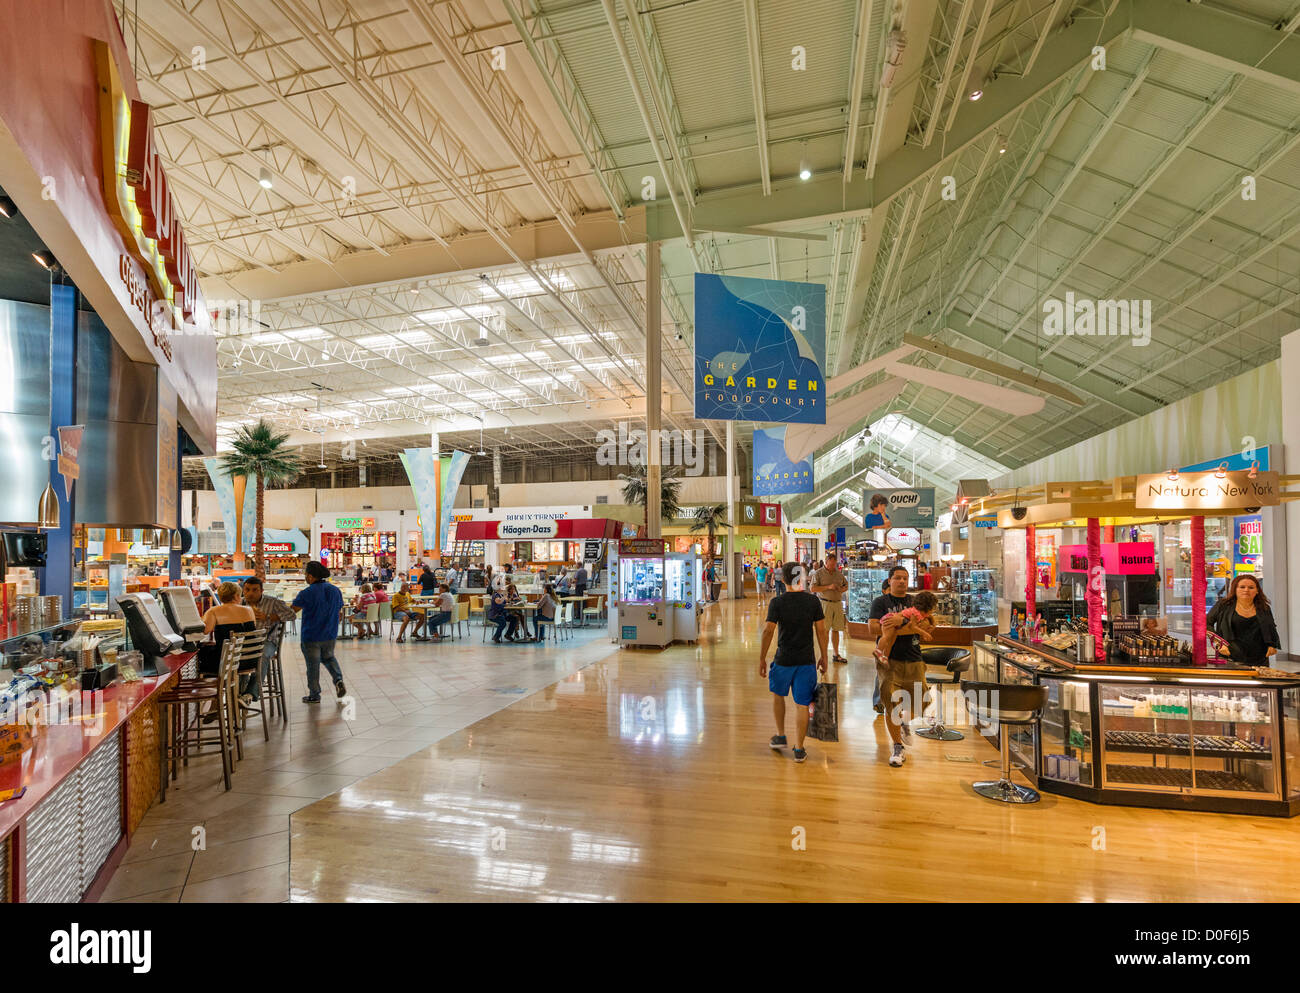 Food Court Inside The Sawgrass Mills Shopping Mall